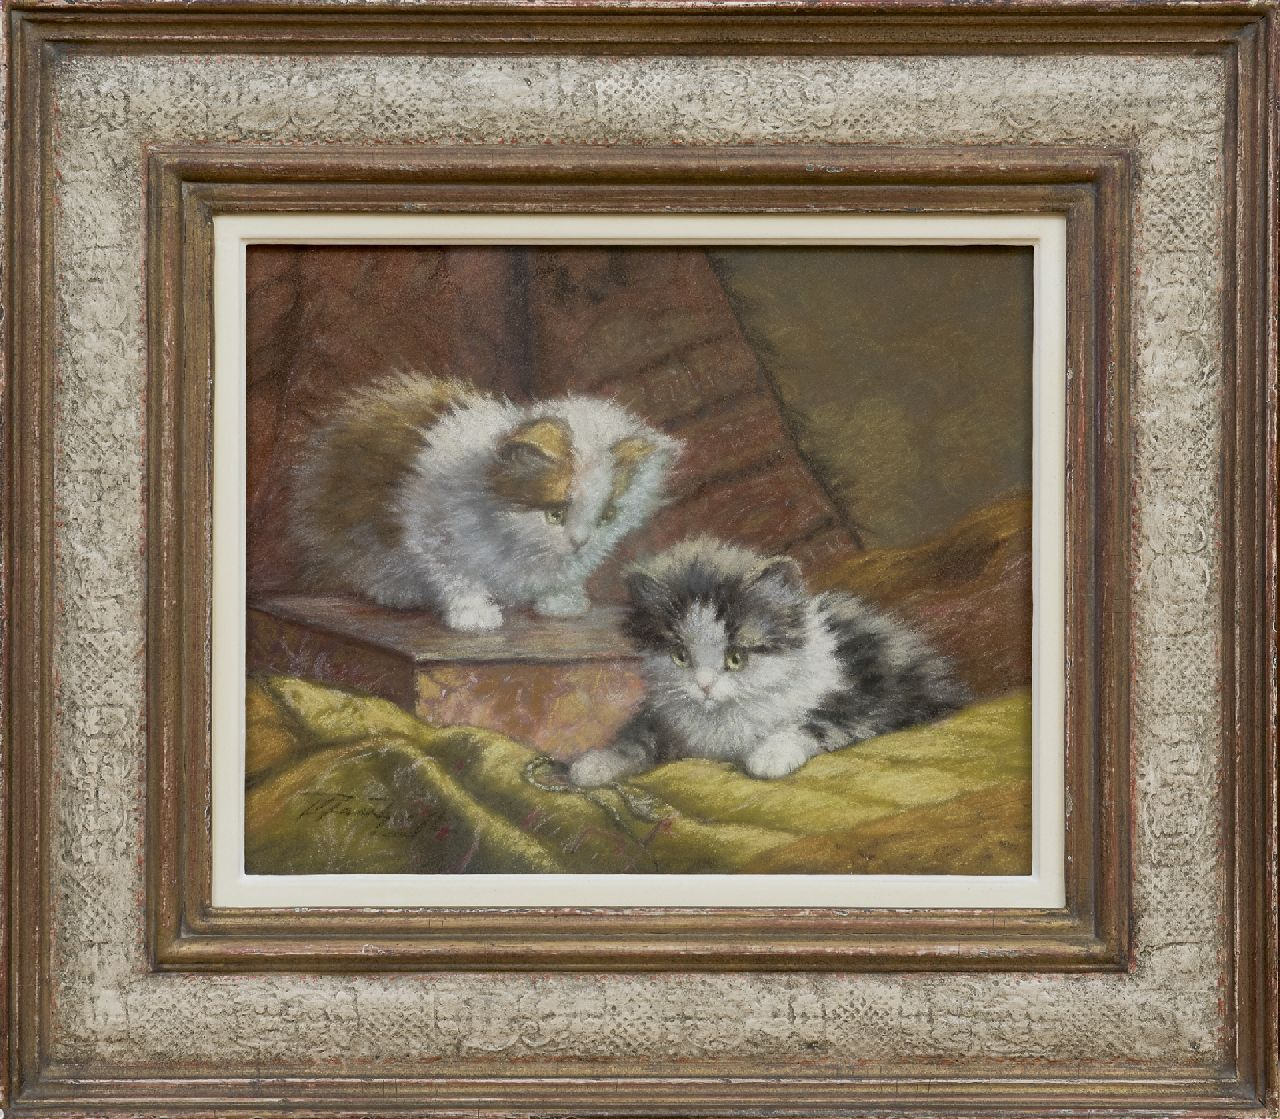 Raaphorst C.  | Cornelis Raaphorst | Watercolours and drawings offered for sale | Two kittens on a cushion, pastel on paper 25.2 x 31.0 cm, signed l.l.